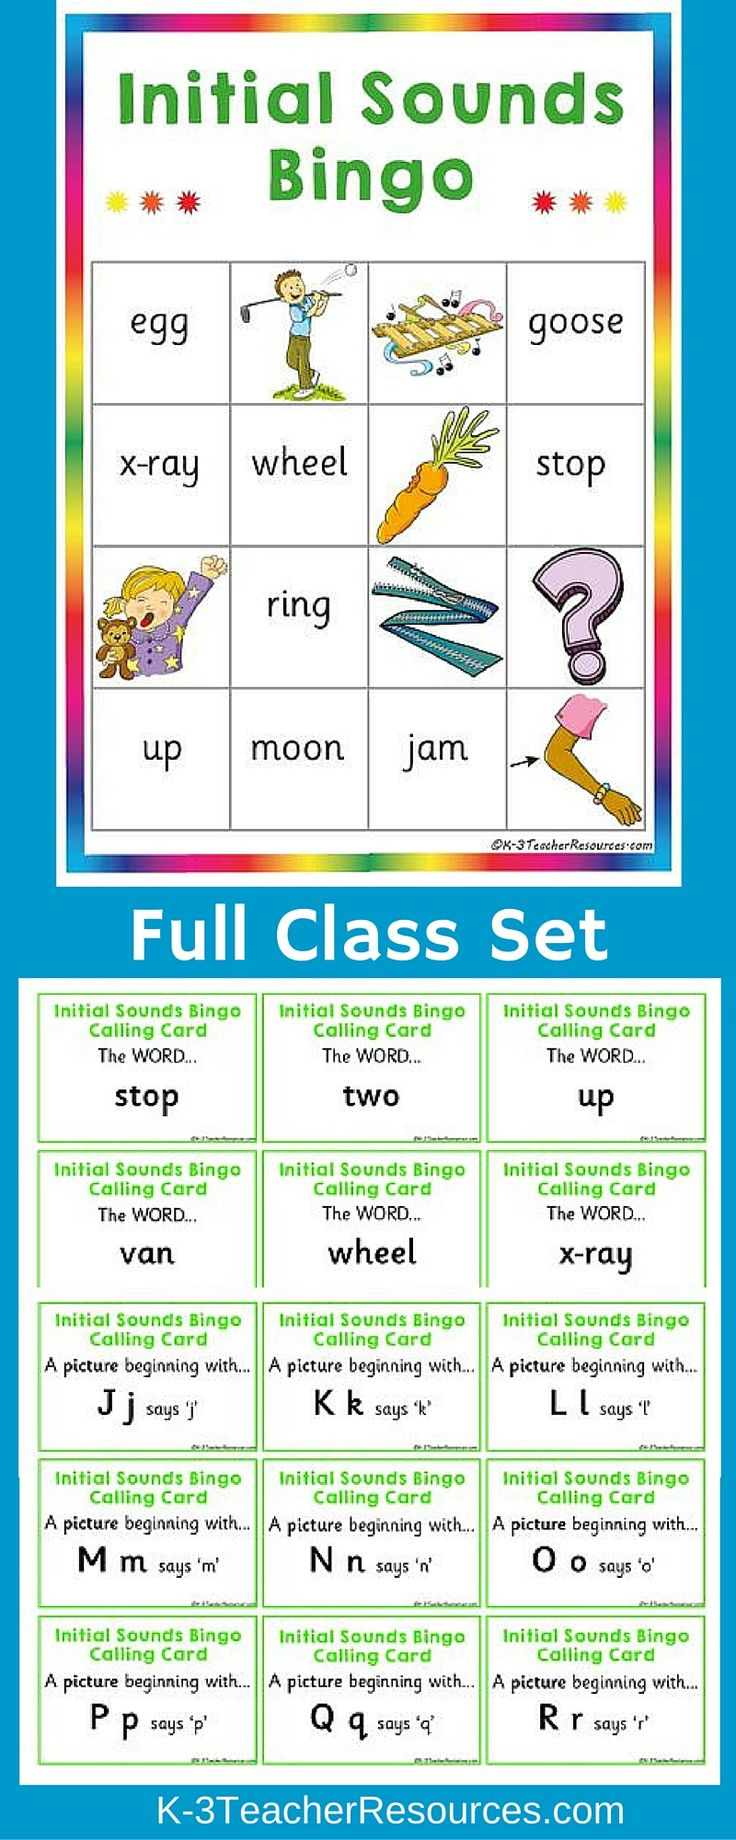 *30 x initial alphabet sounds bingo boards with images and words. *52 calling cards *Ideal for whole class or small groups.